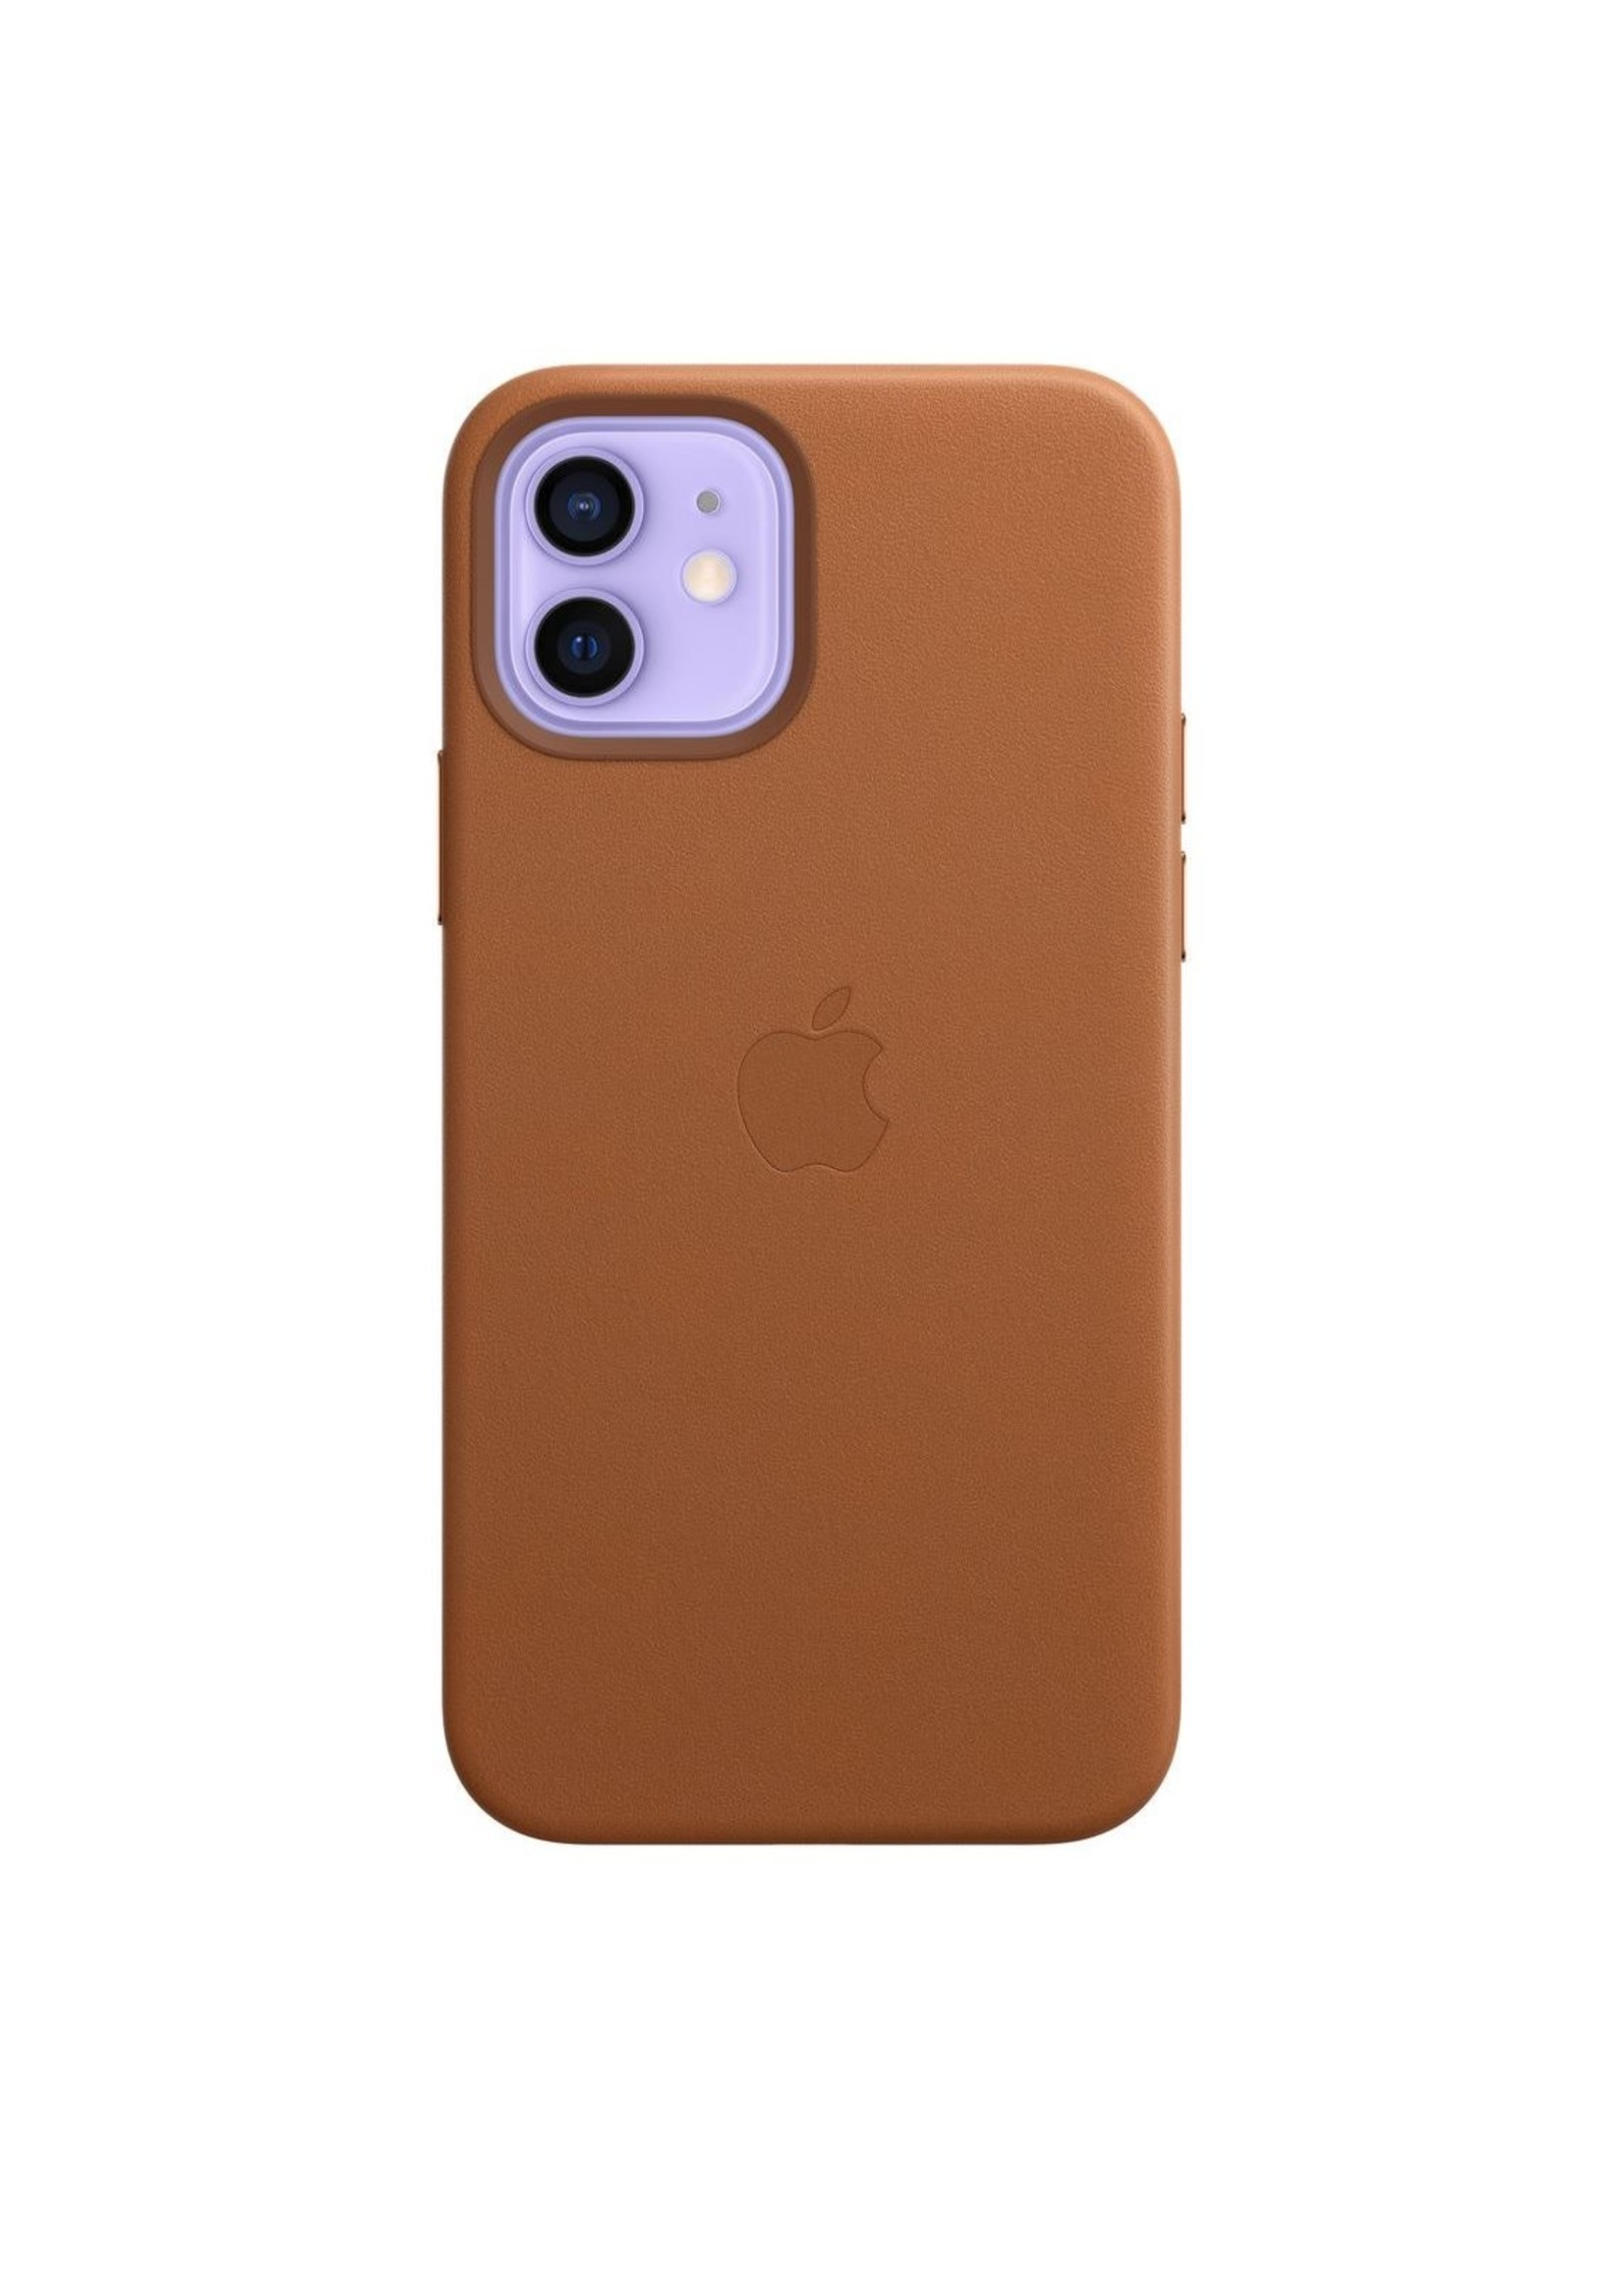 Apple iPhone 12/12 Pro Leather Case Saddle Brown